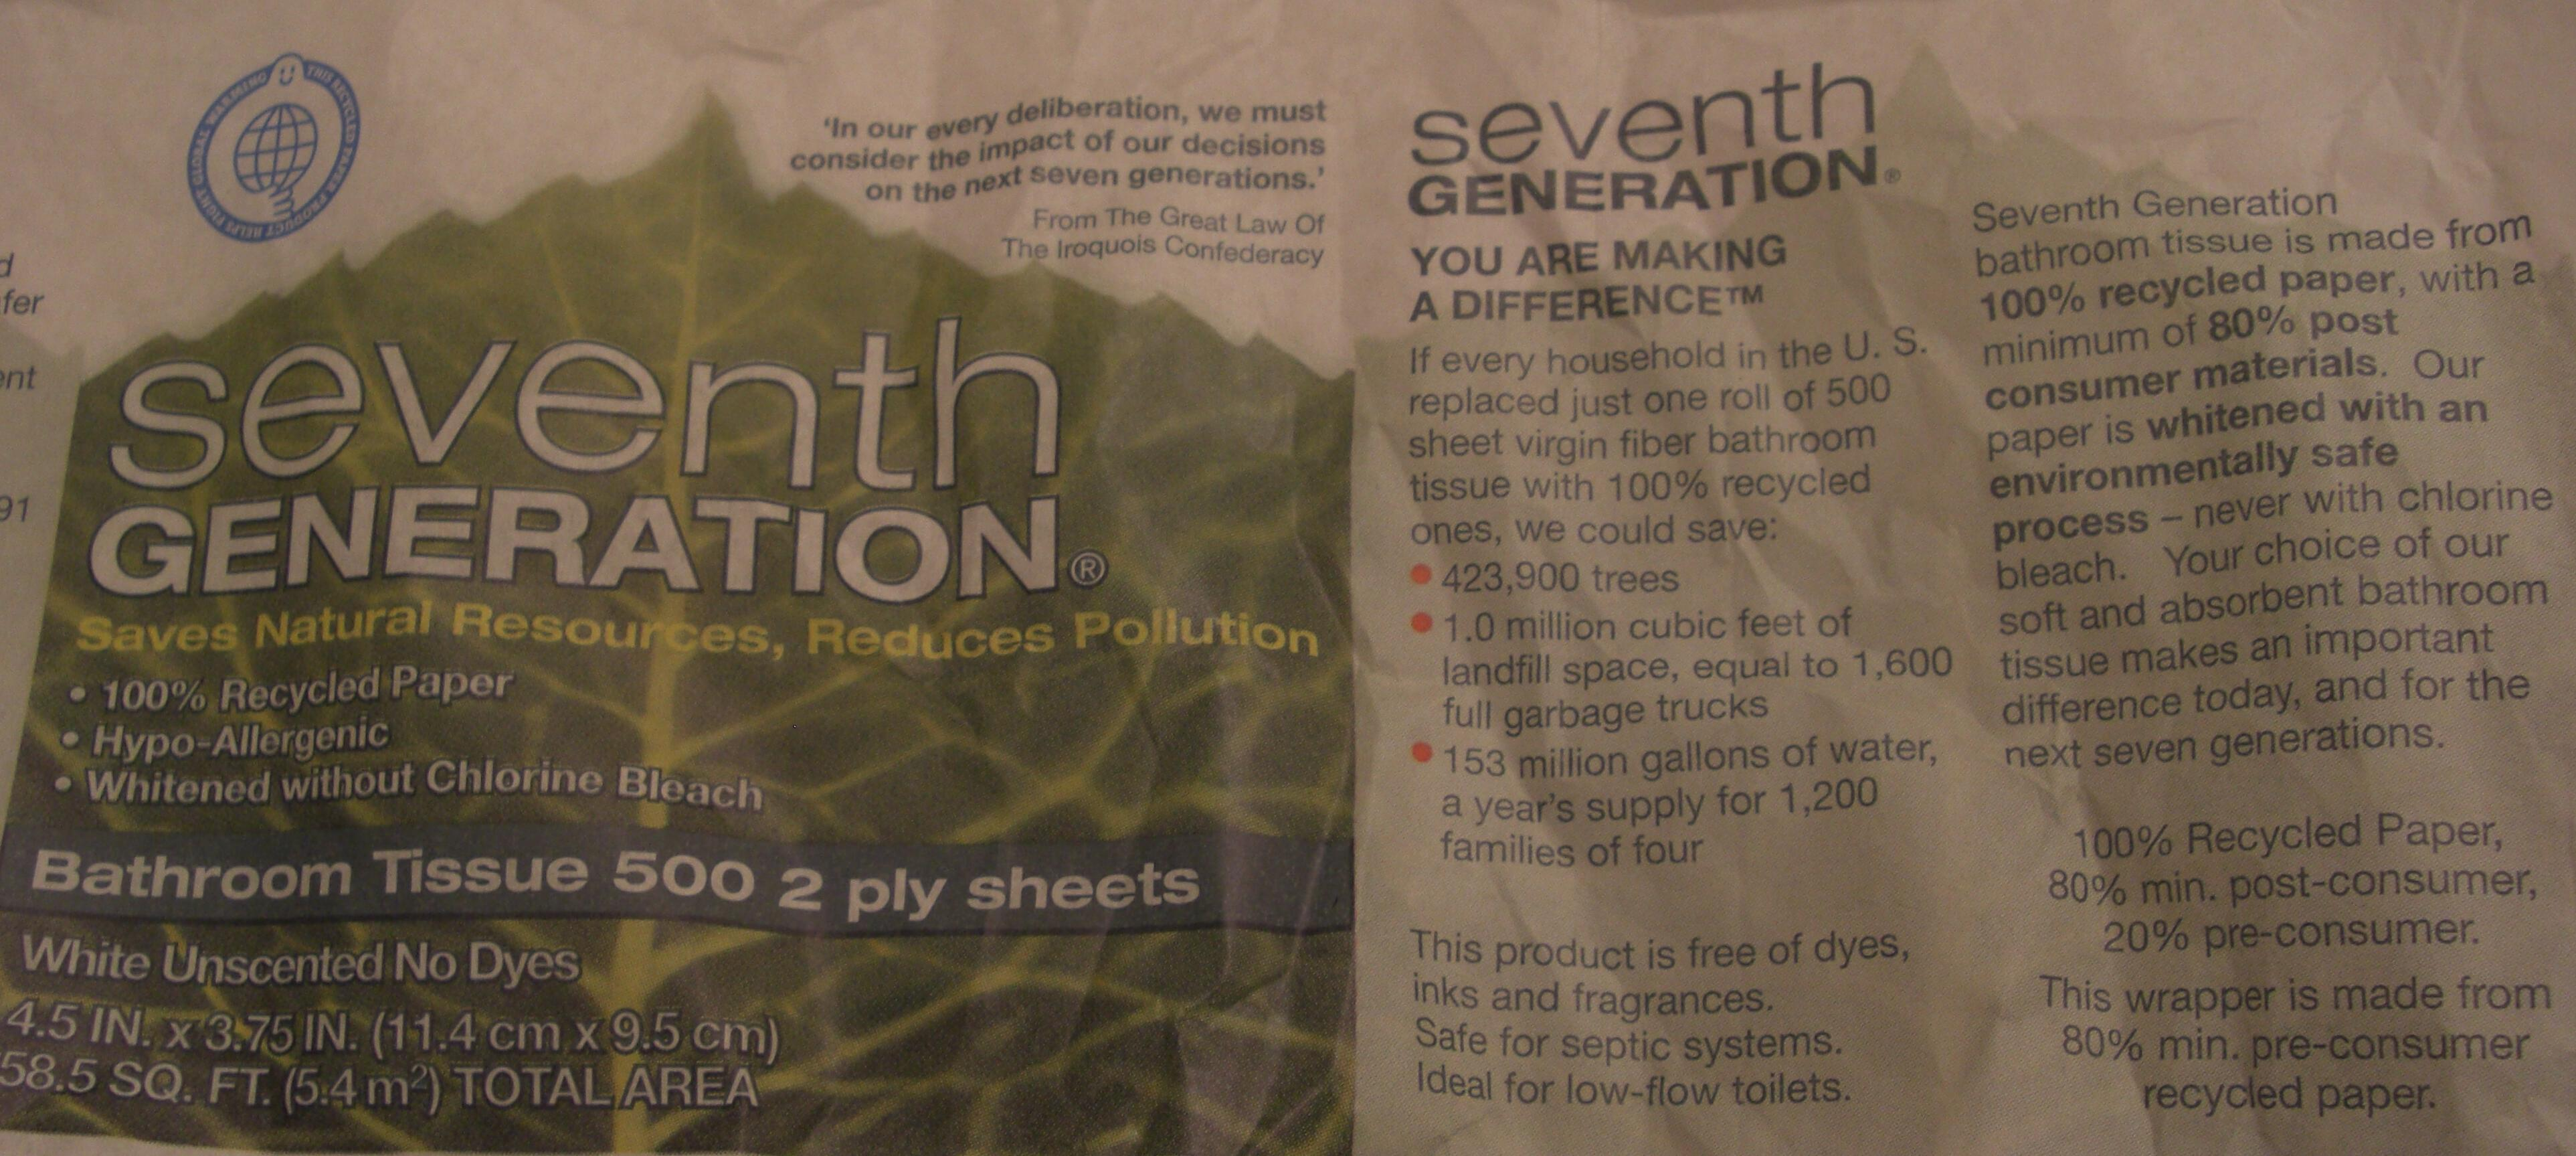 Seventh Generation bathroom tissue made from recycled paper